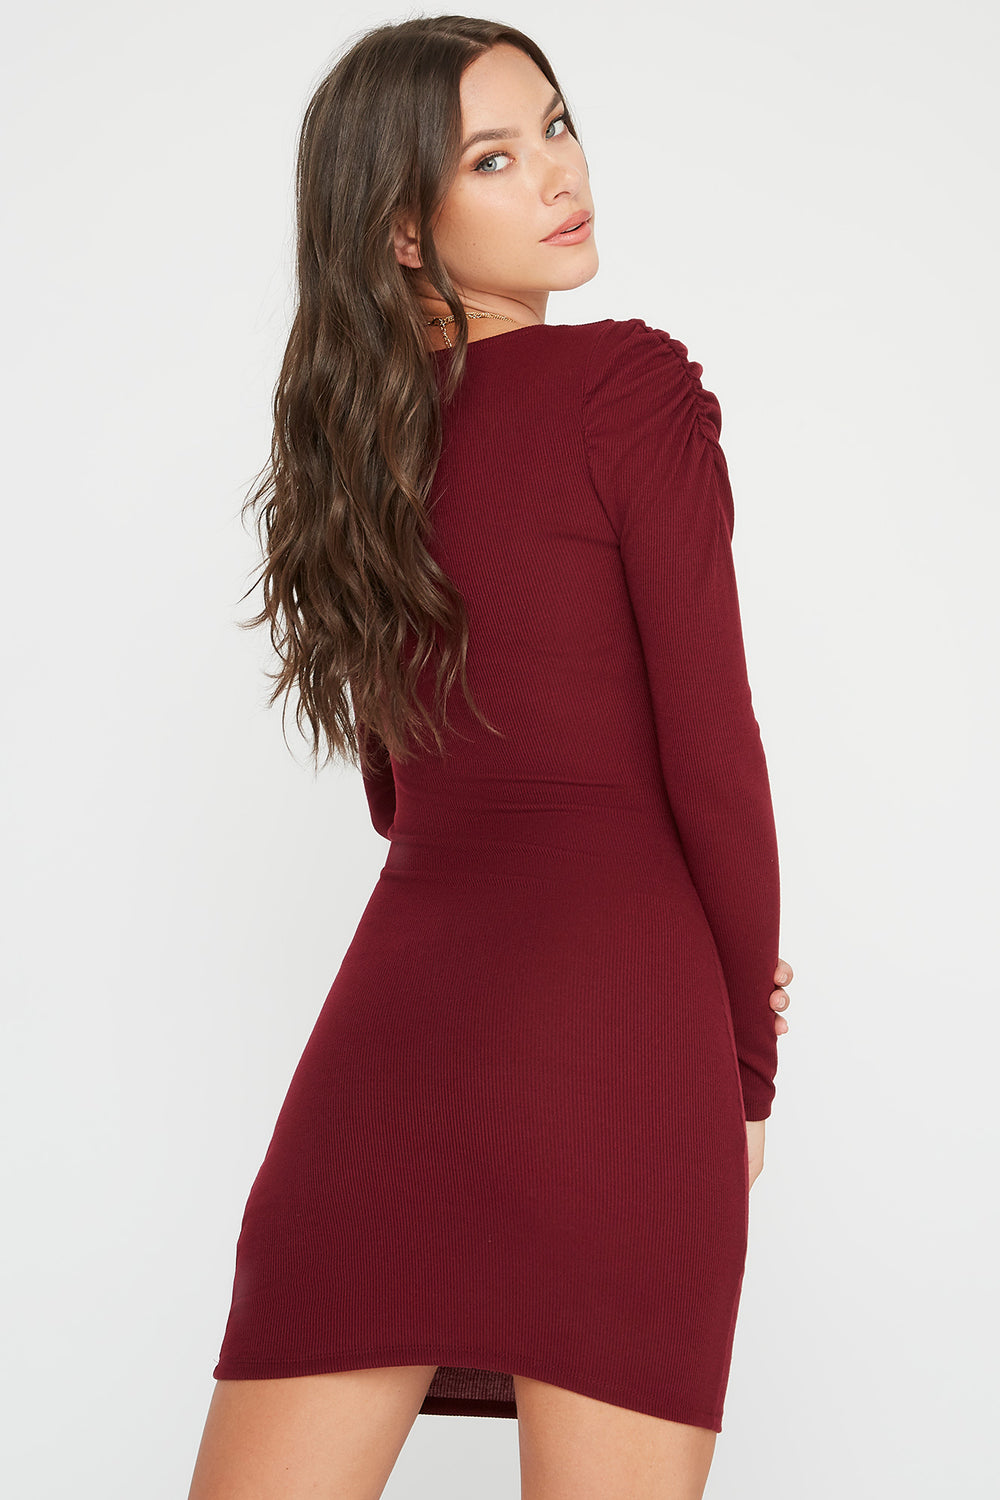 Ribbed Puff Sleeve Square Neck Mini Dress Wine